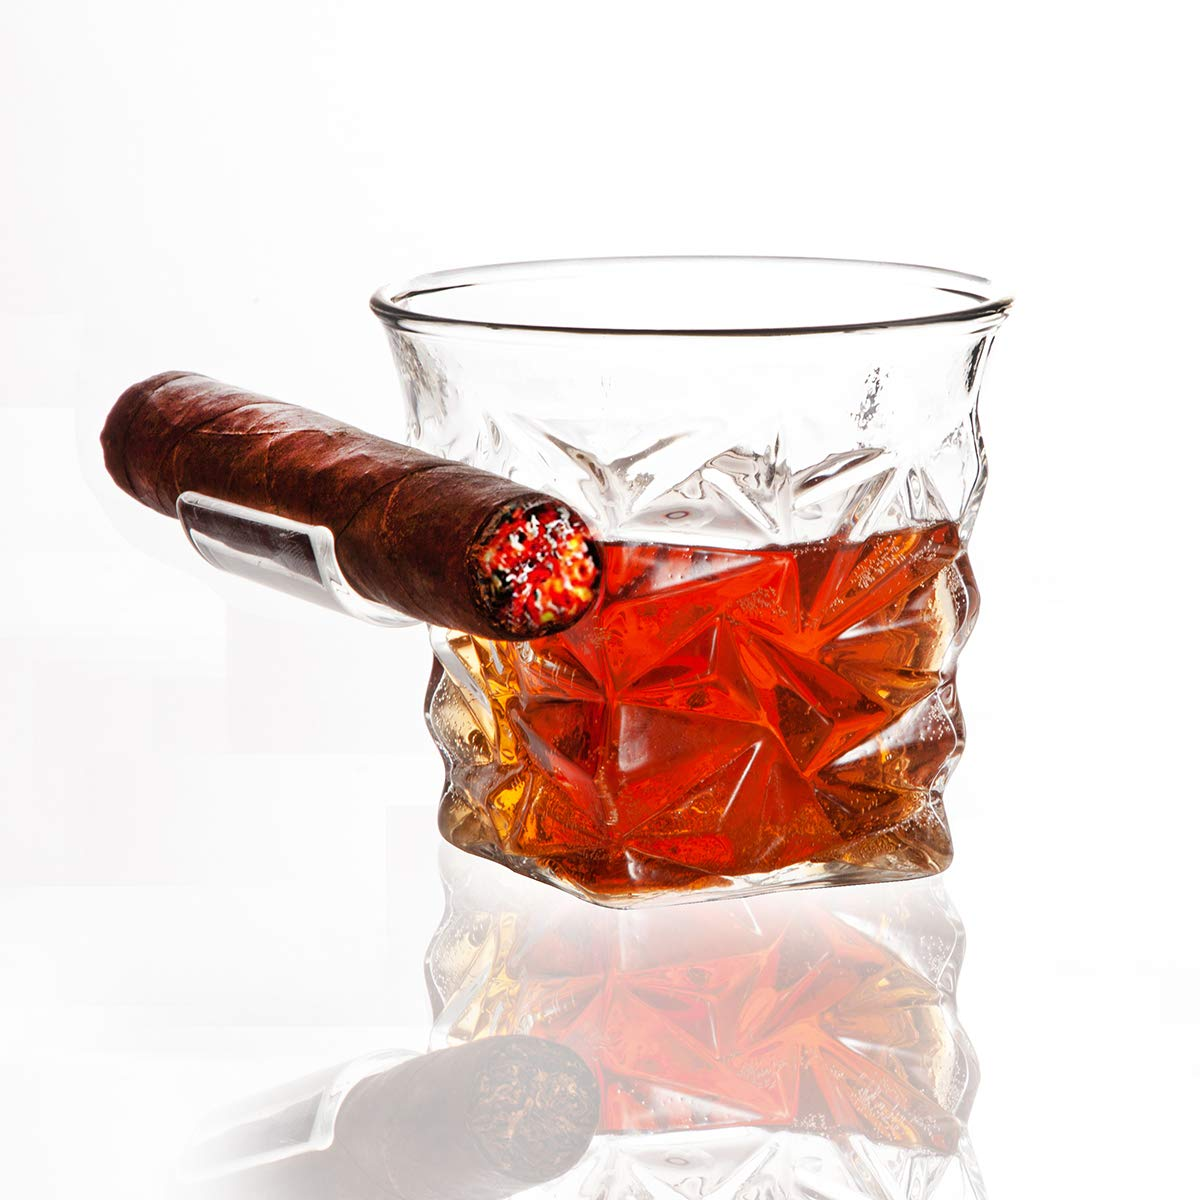 Beautifultracy Cigar Glass Whisky Glass with Cigar Holder